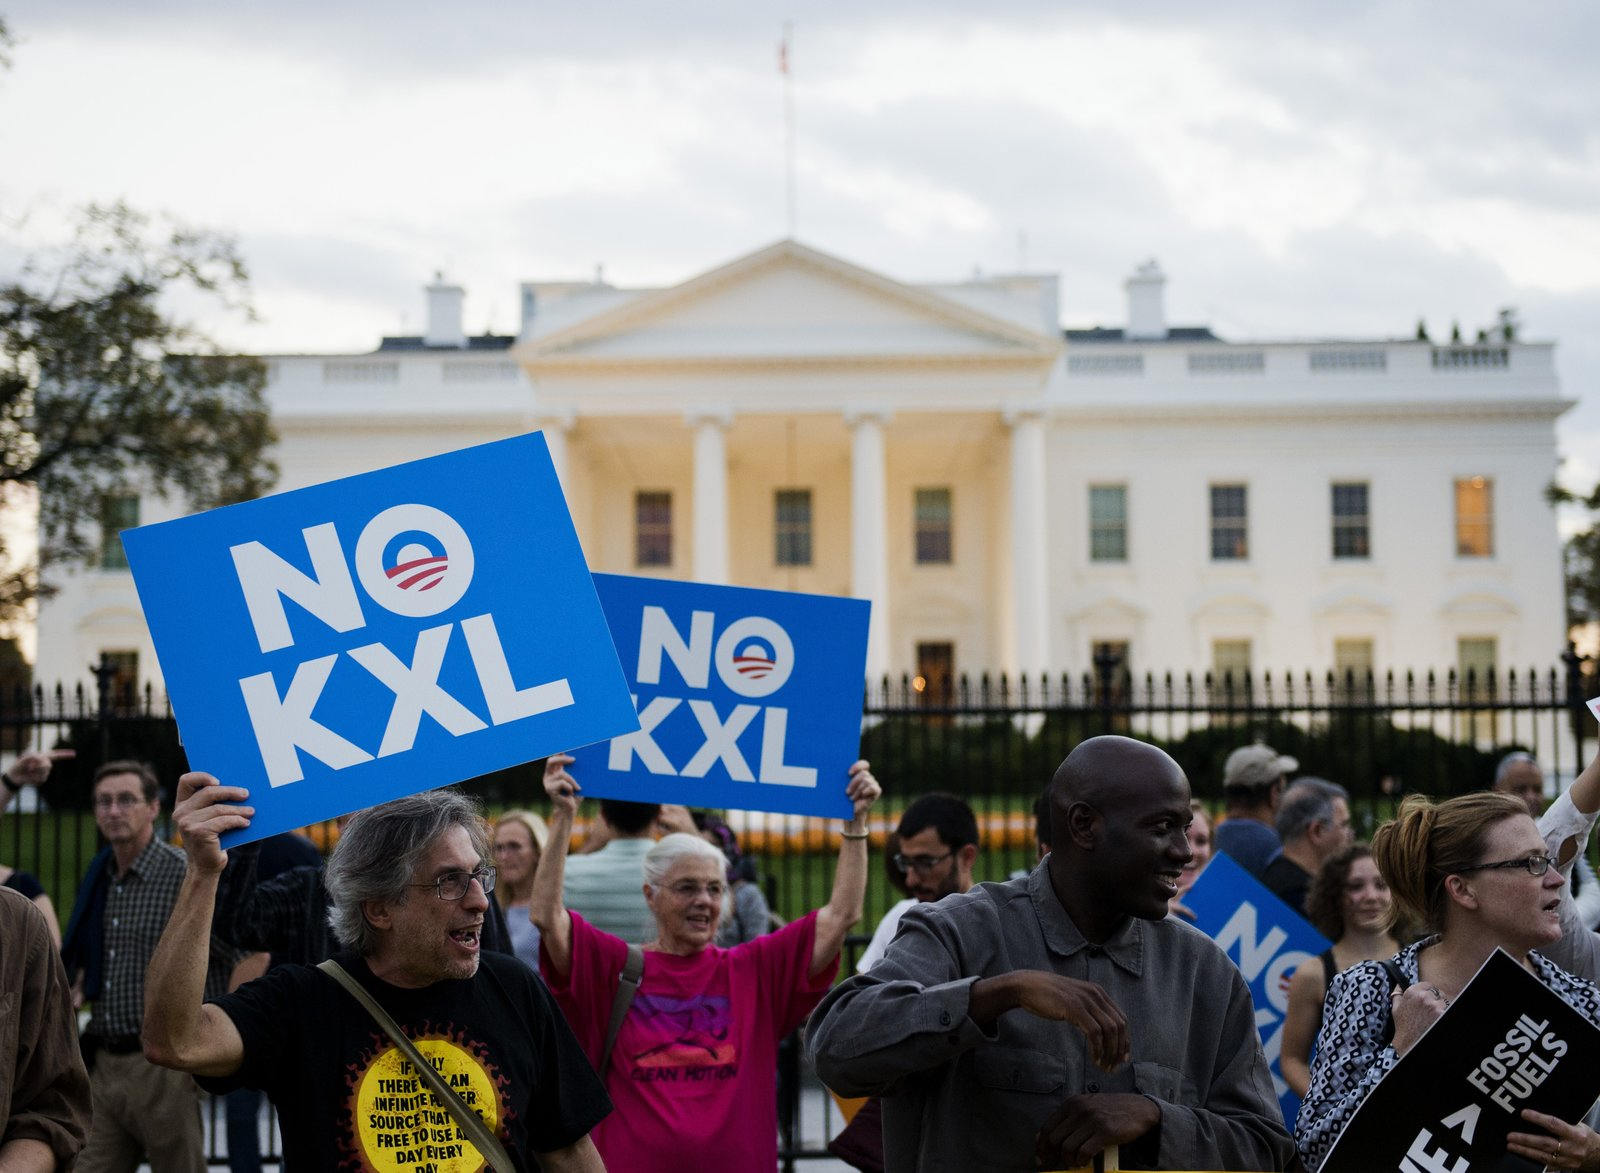 Anti-Keystone XL activists may be making their way back to the White House